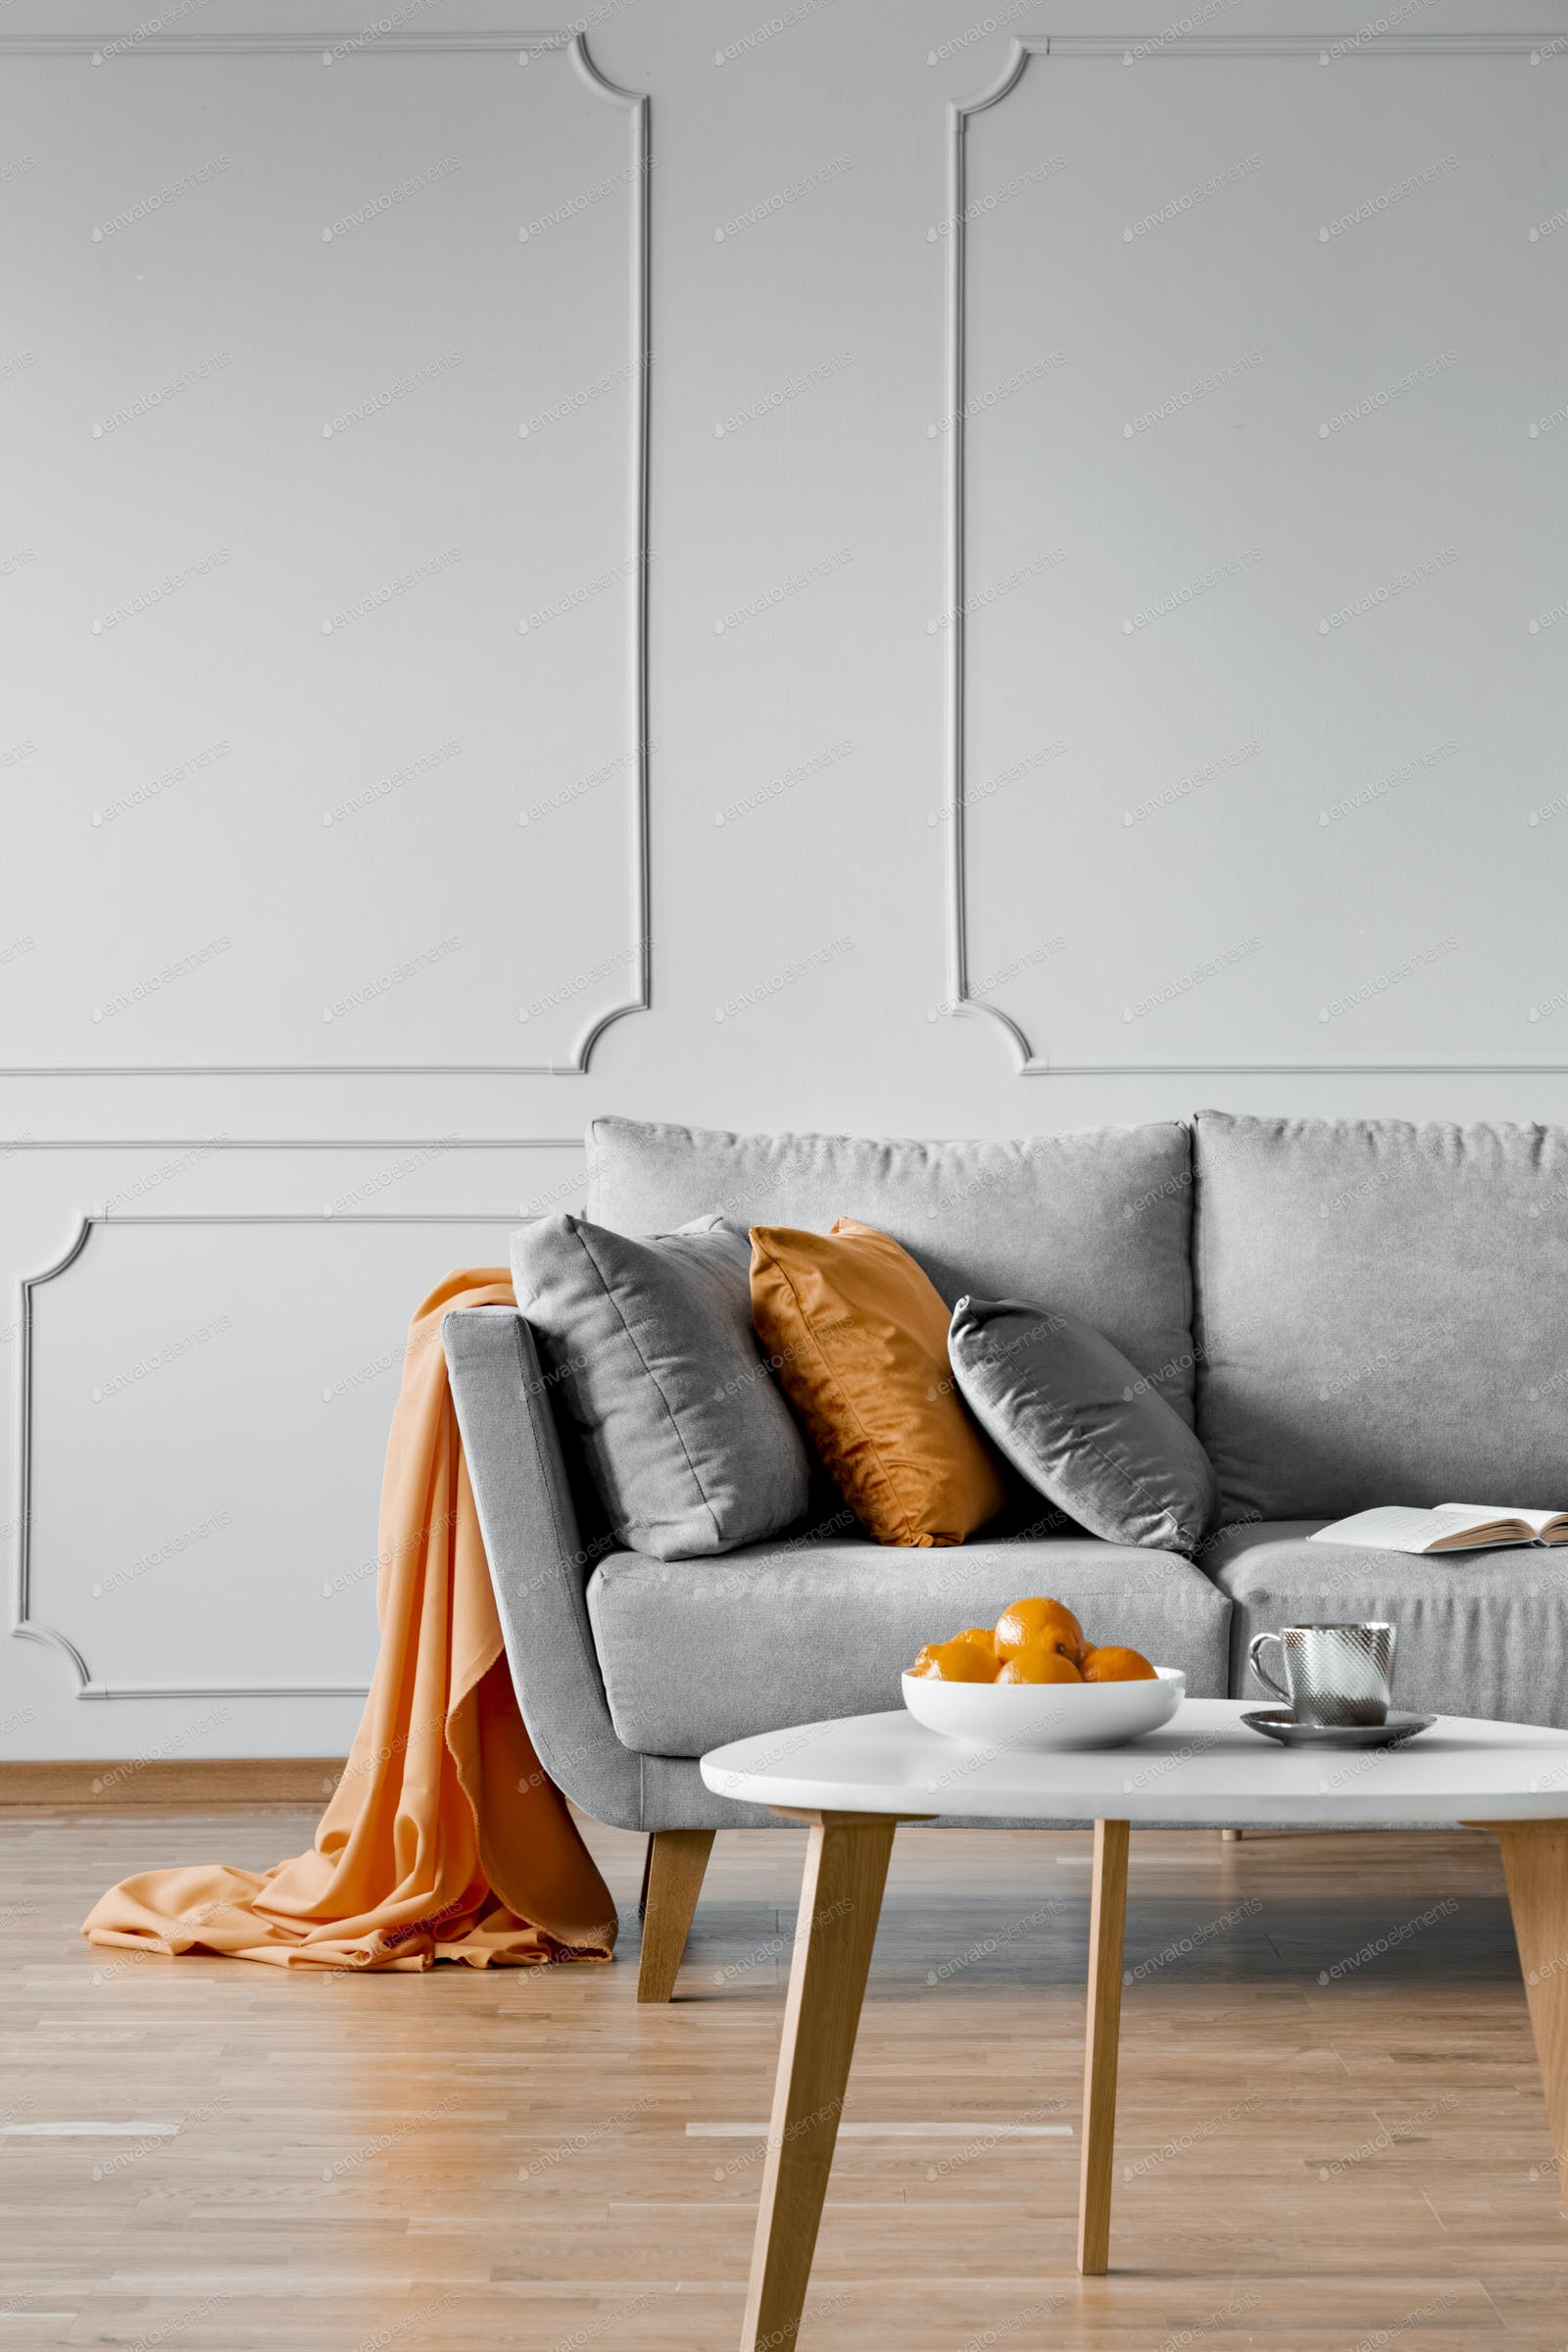 Silver, grey and orange pillows on scandinavian sofa, copy space on empty  wall photo by bialasiewicz on Envato Elements